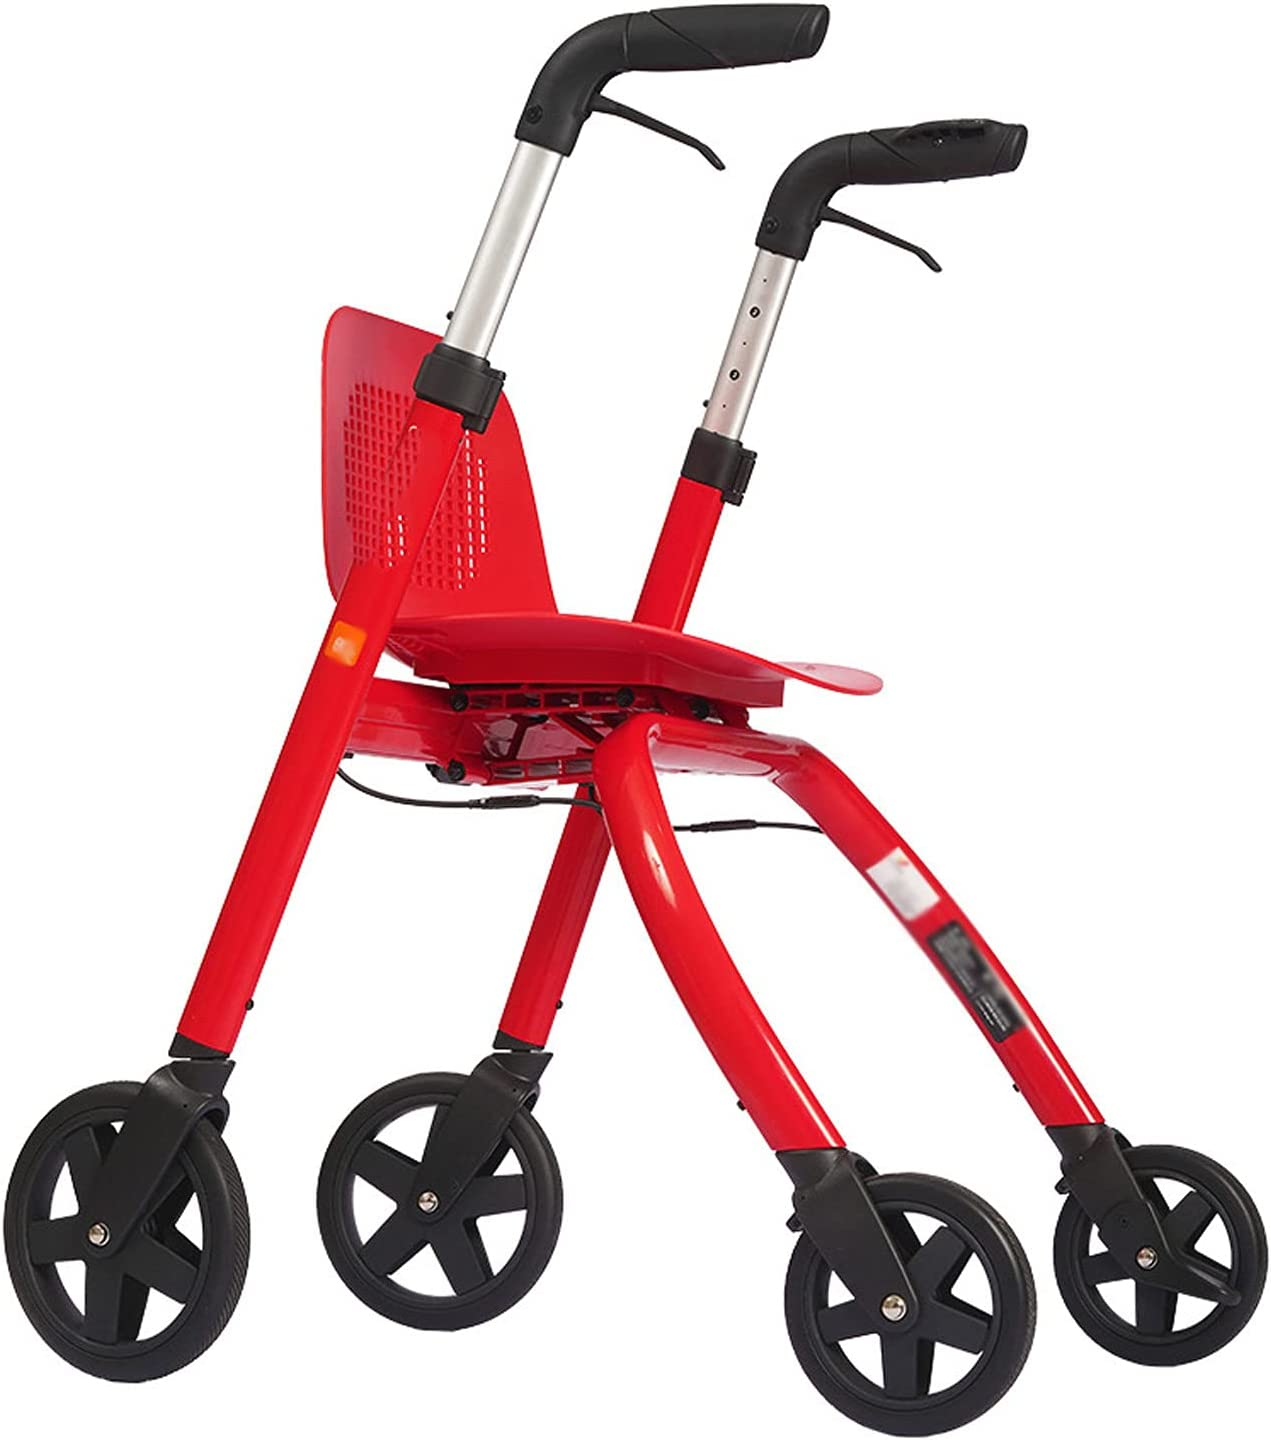 QXIAOYANus Rollator Walker Selling Clearance SALE Limited time for Seniors Walk Lightweight Upright